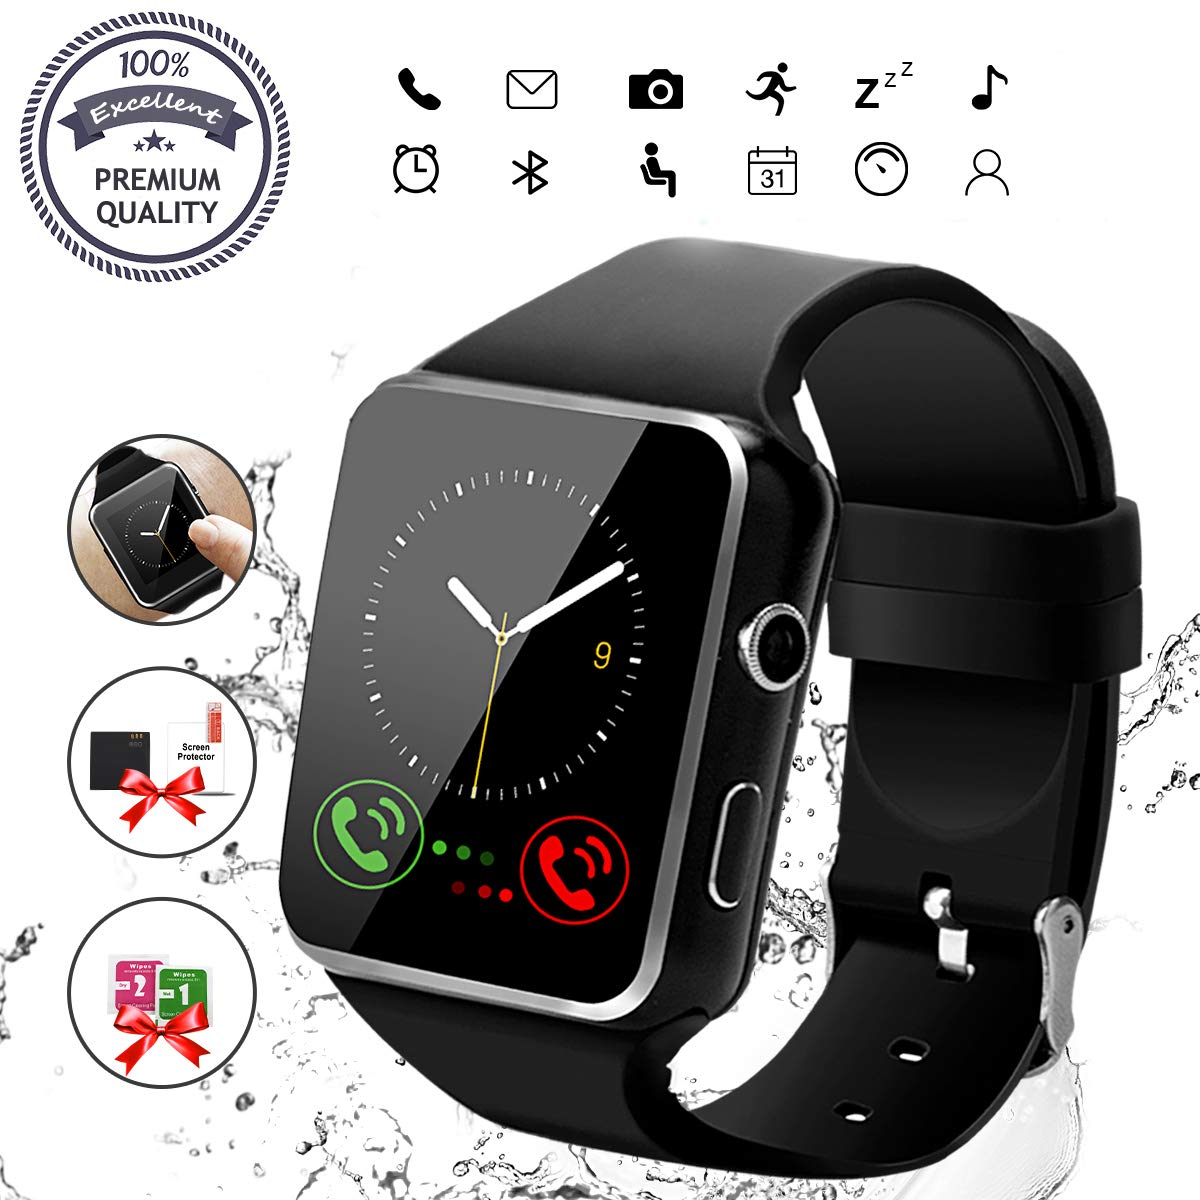 smart-watch-bluetooth-smartwatch-touch-screen-wrist-watch-with-camerasim-card-slotwaterproof-smart-watch-sports-fitness-tracker-android-phone-watch-compatible-with-android-phones-samsung-h